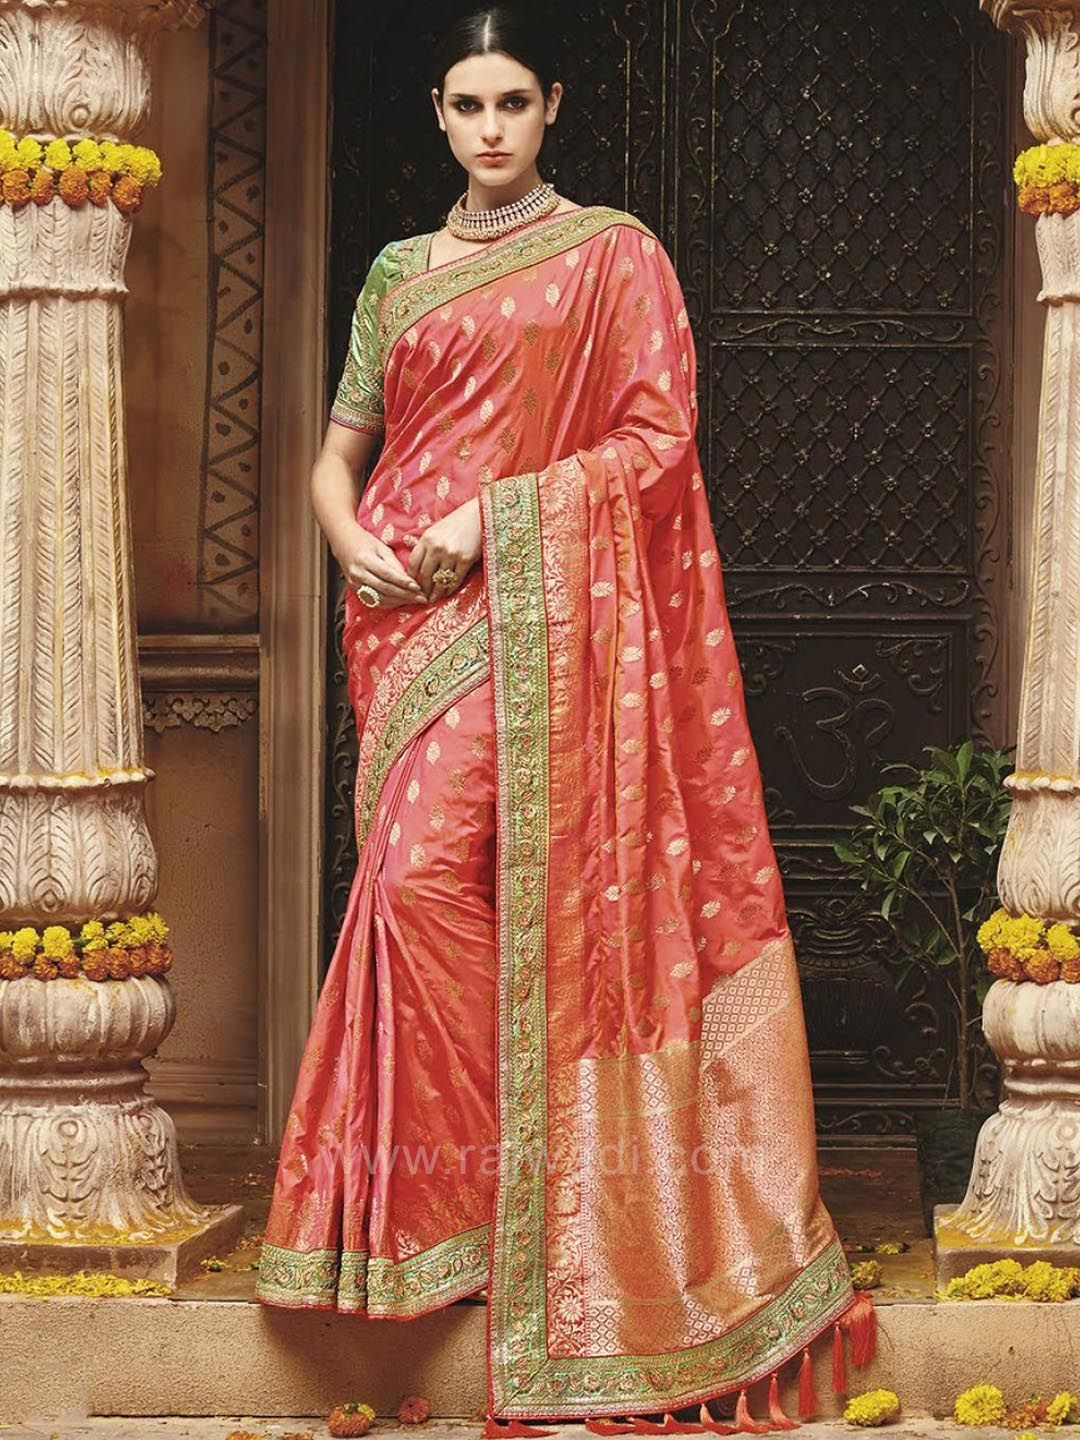 d2d882f879 Banarasi Silk fabric Saree in Neon Coral color is enhanced with heavy  embroidery work having tassels on pallu. Available with contrast Light  Green Silk ...